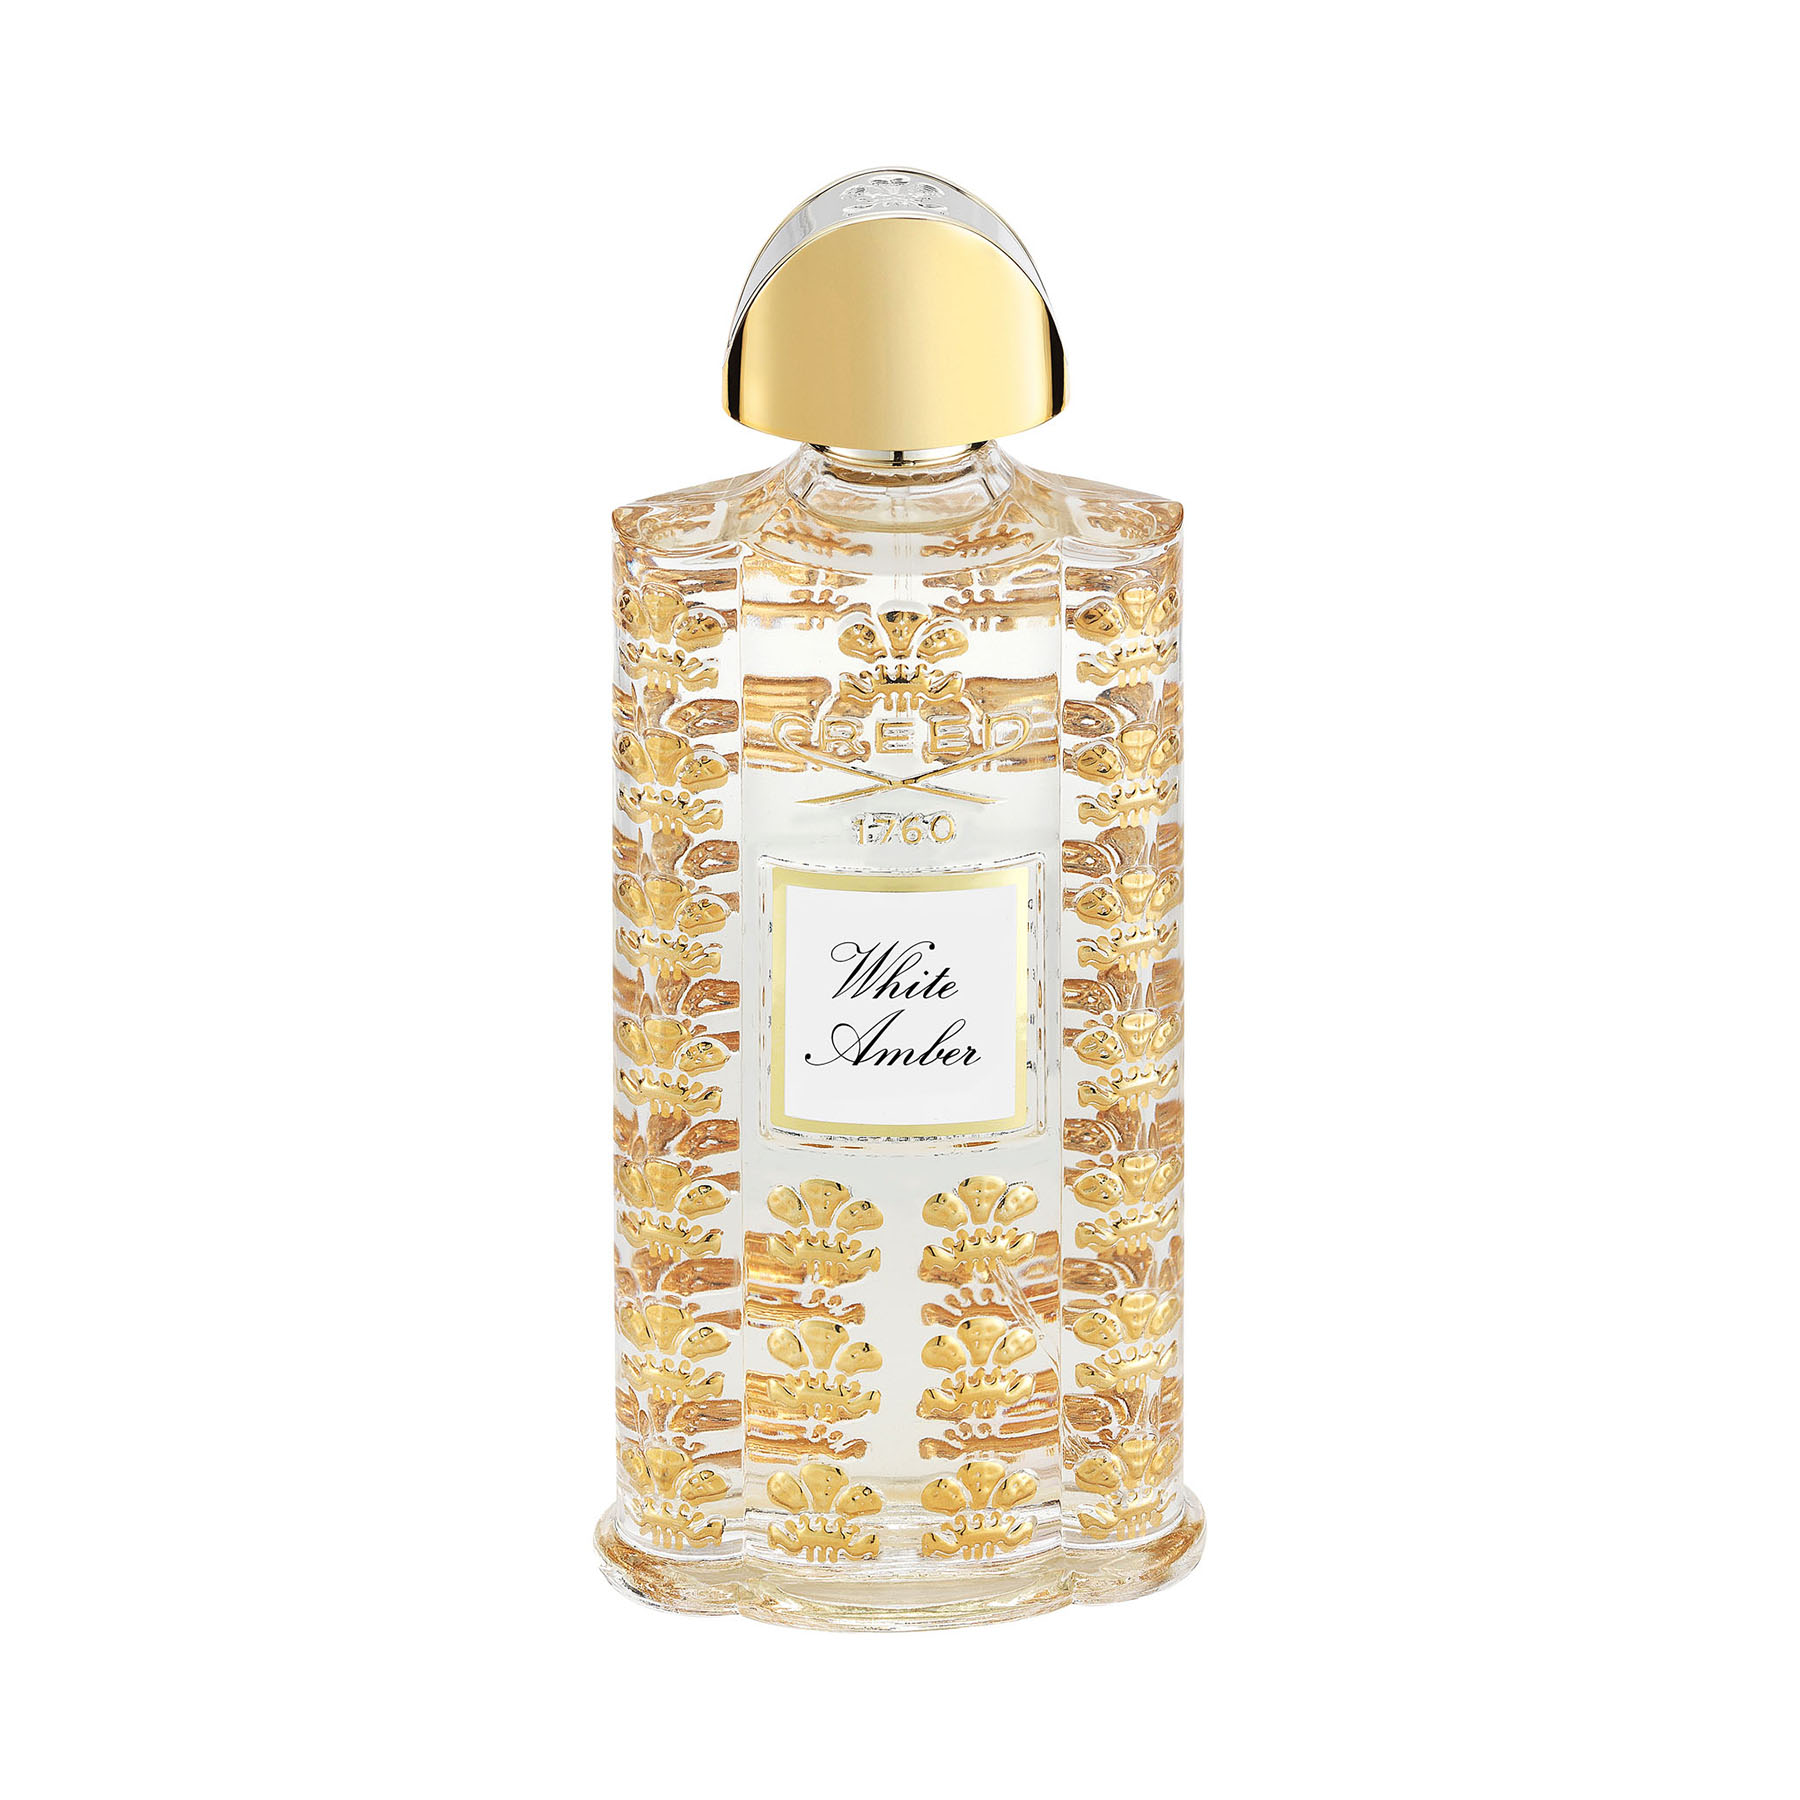 Creed White Amber Perfume